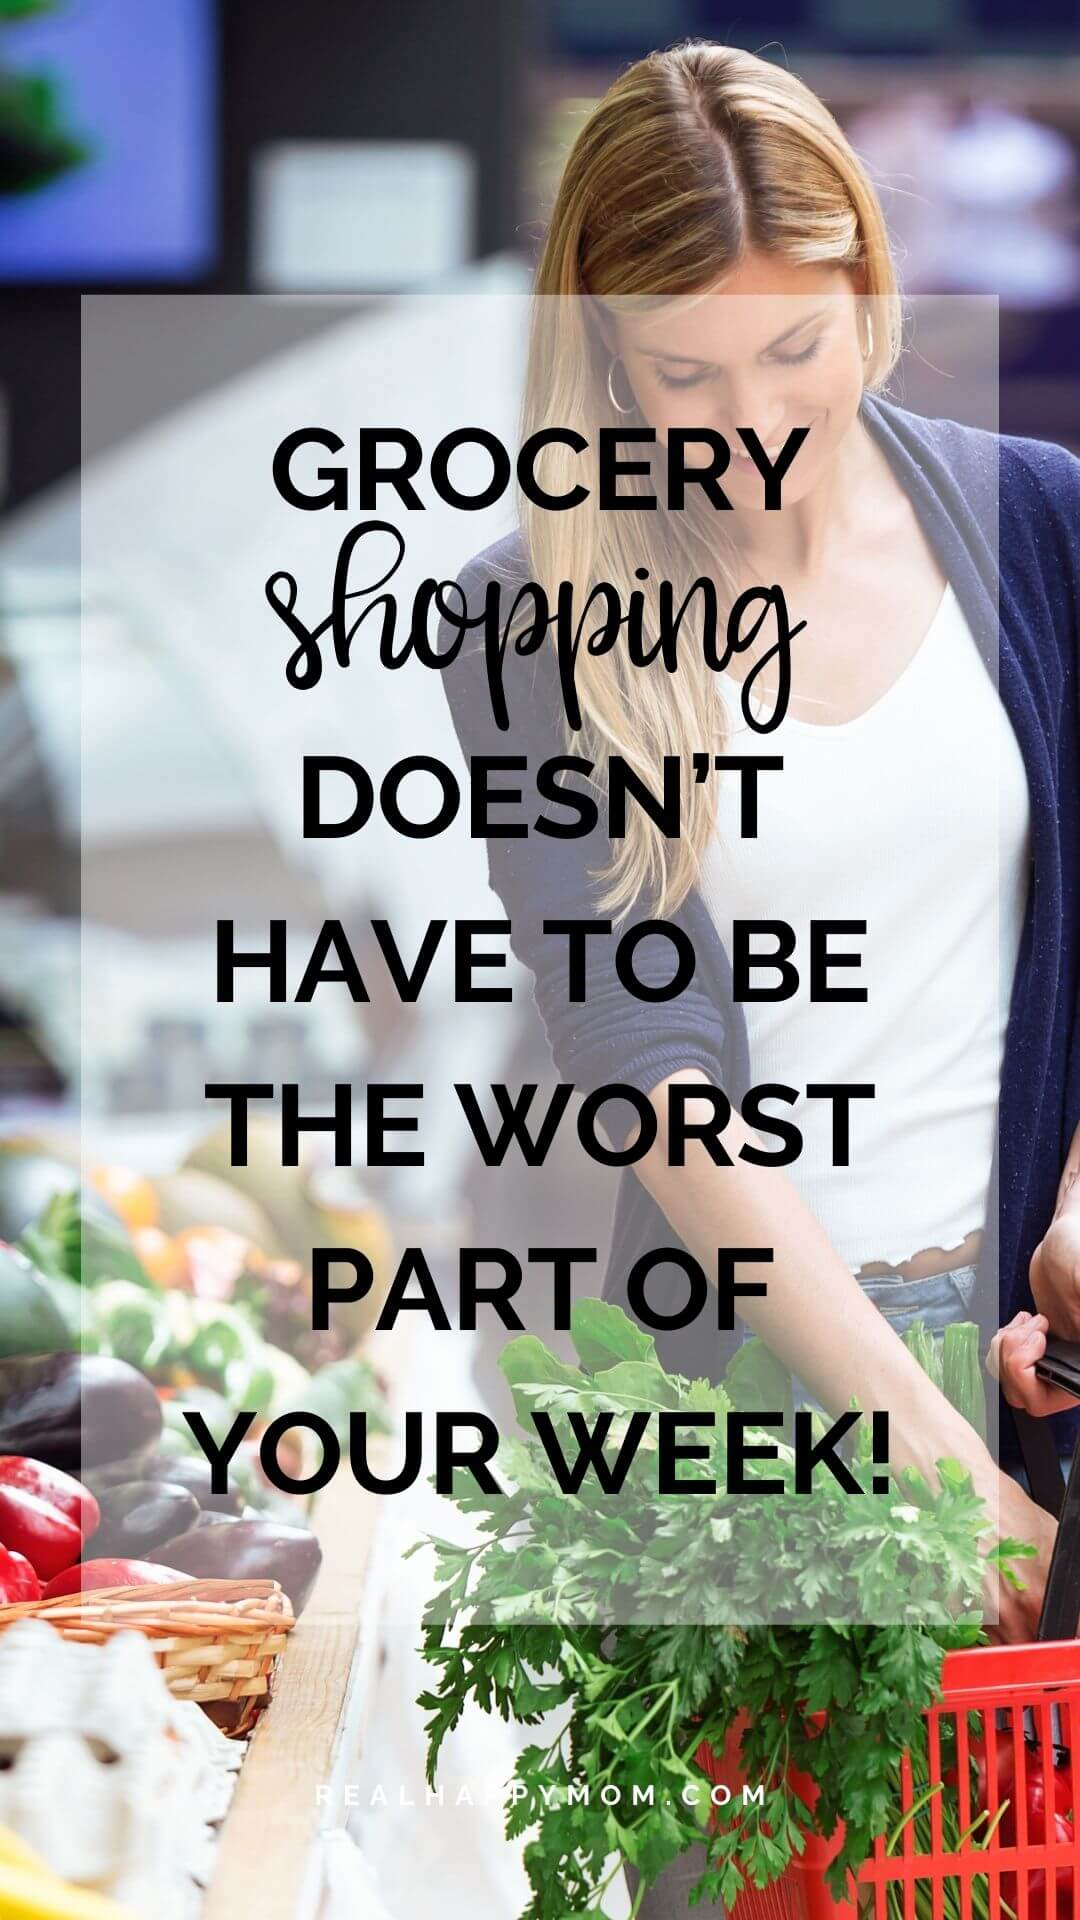 Grocery Shopping Doesn't Have to be the Worst Part of Your Week!